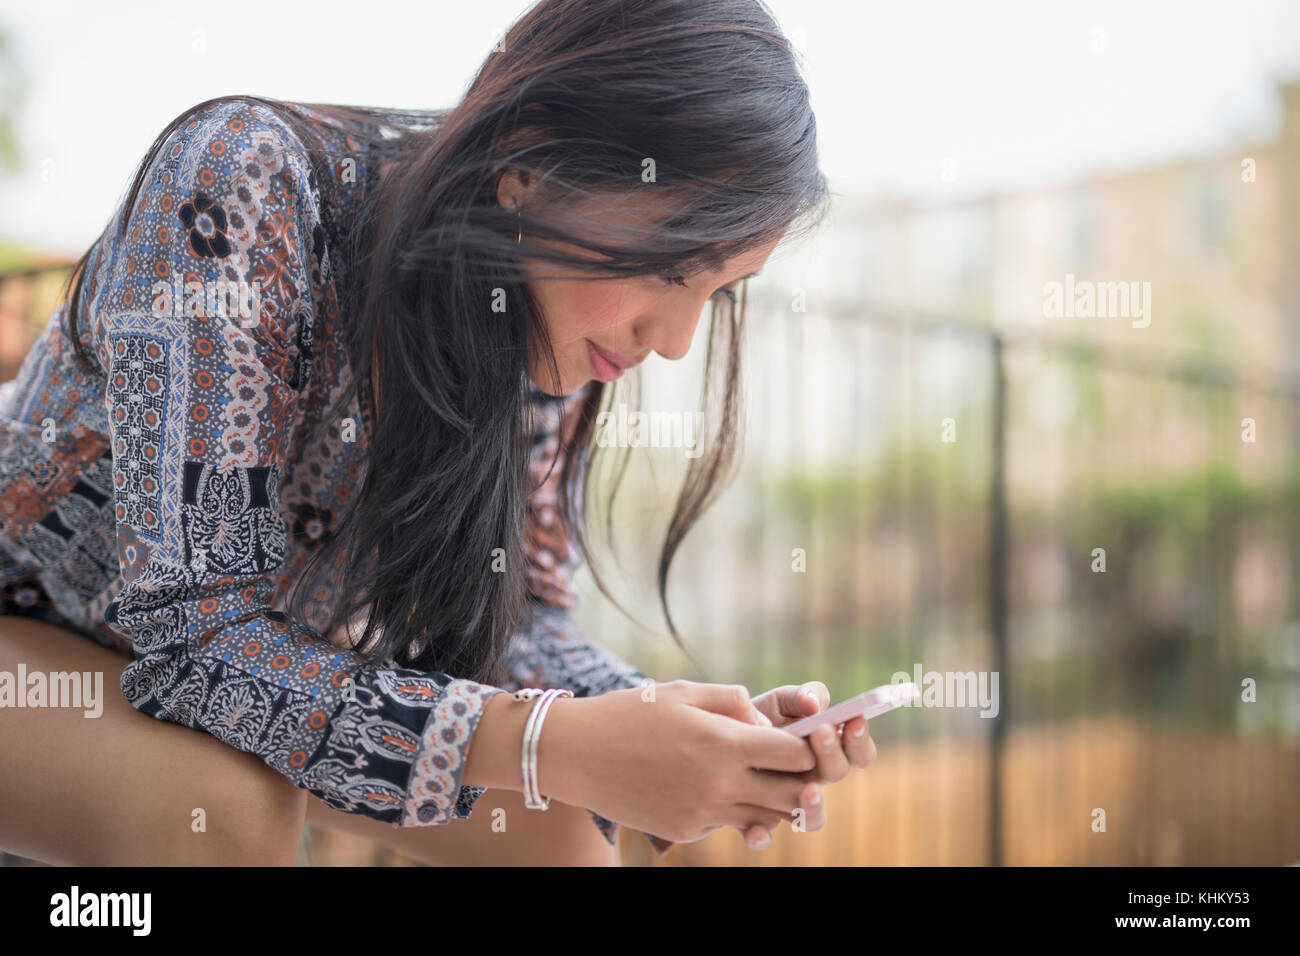 Young woman using her smart phone - Stock Image